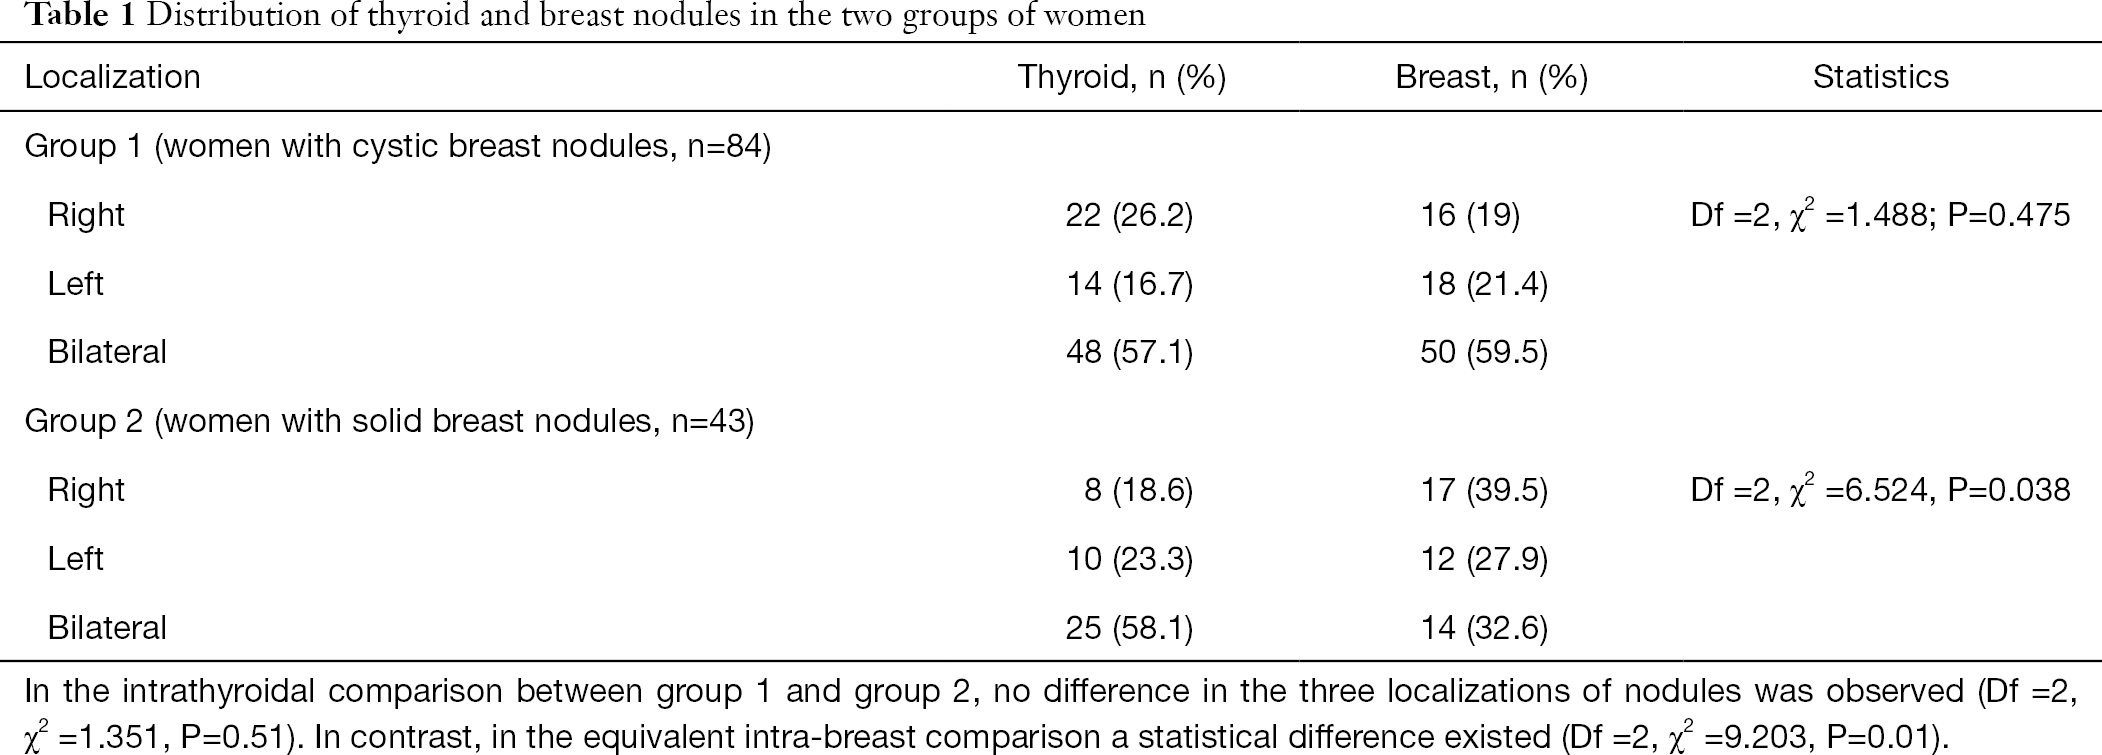 Thyroid Nodules Coexisting With Either Cystic Or Solid Breast